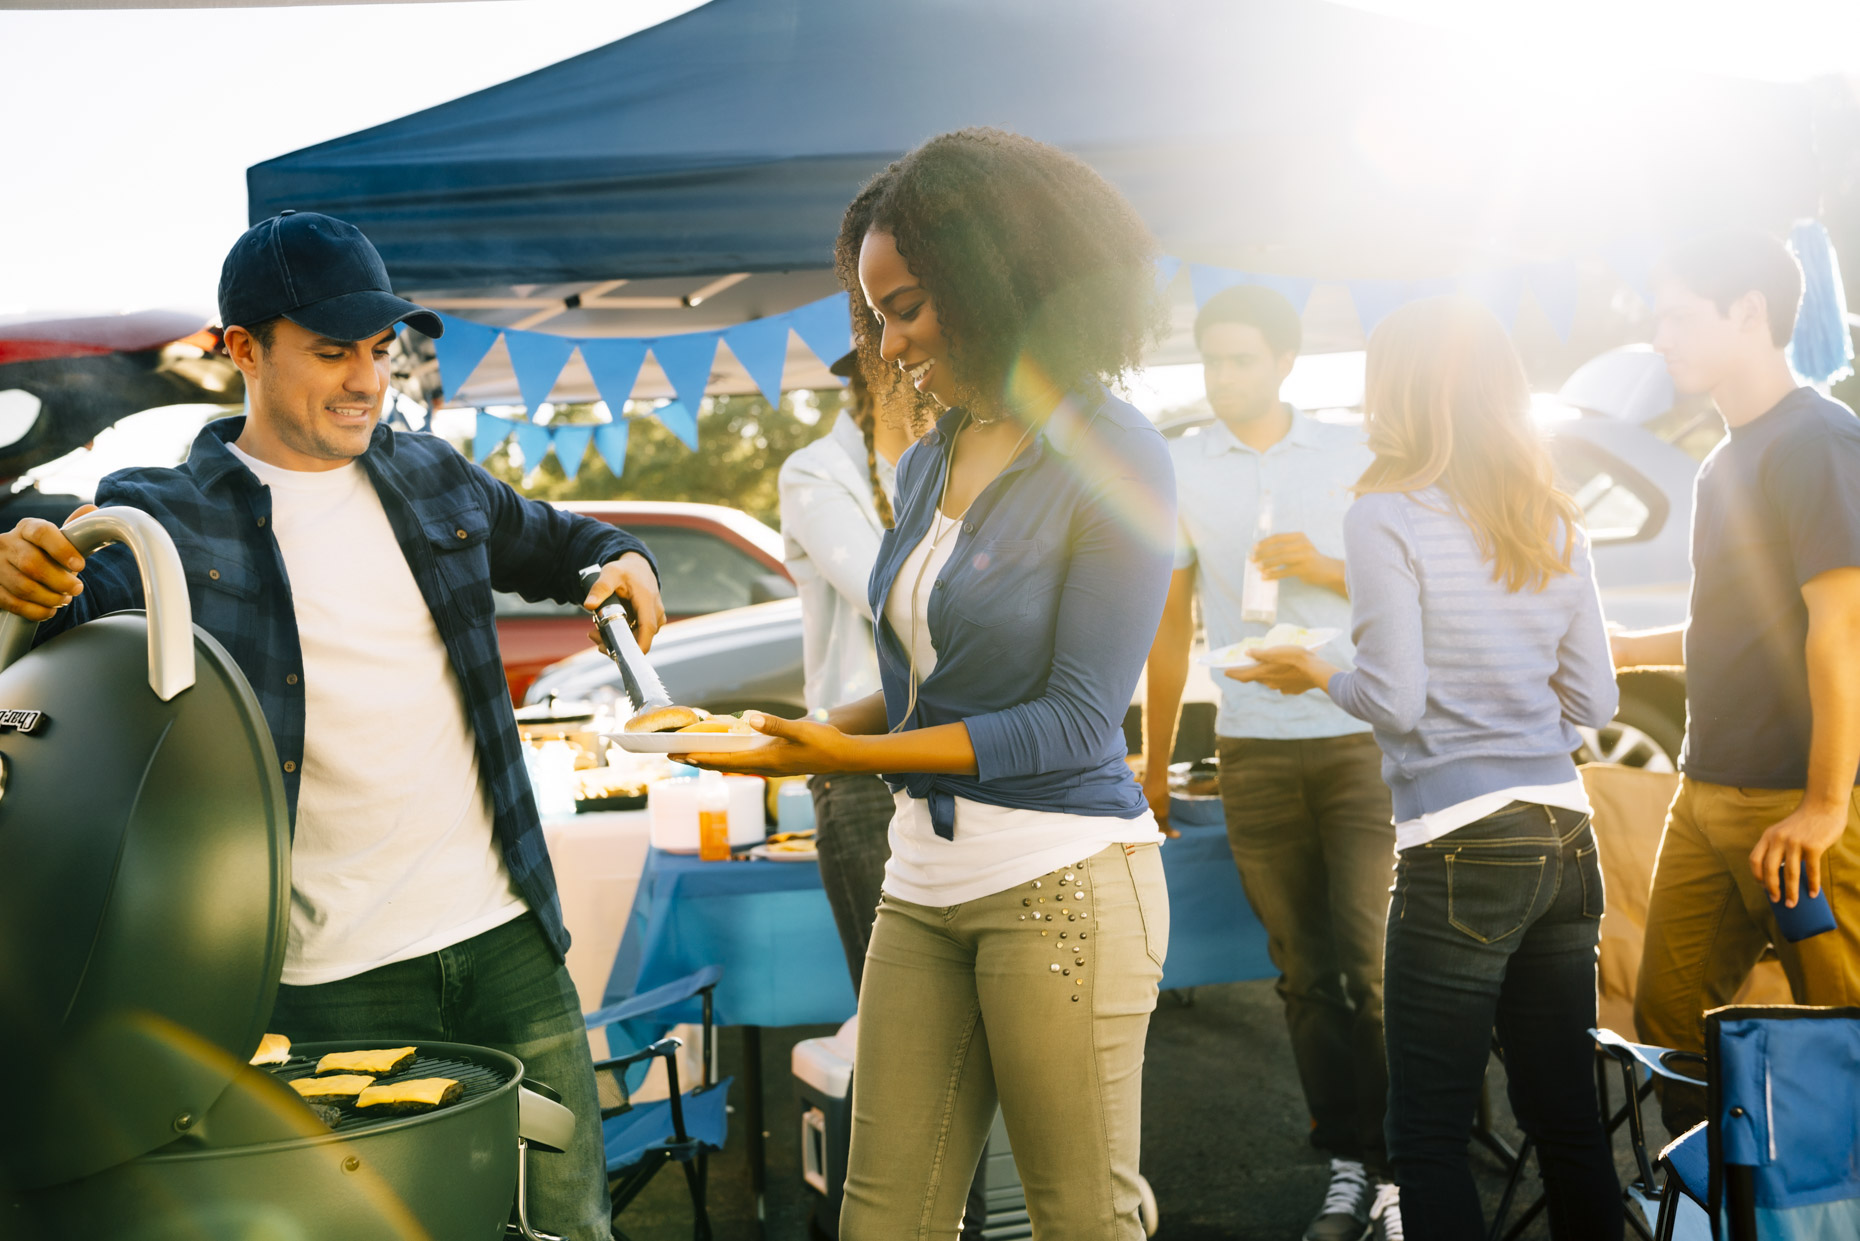 Man giving woman hamburger from grill at tailgate party